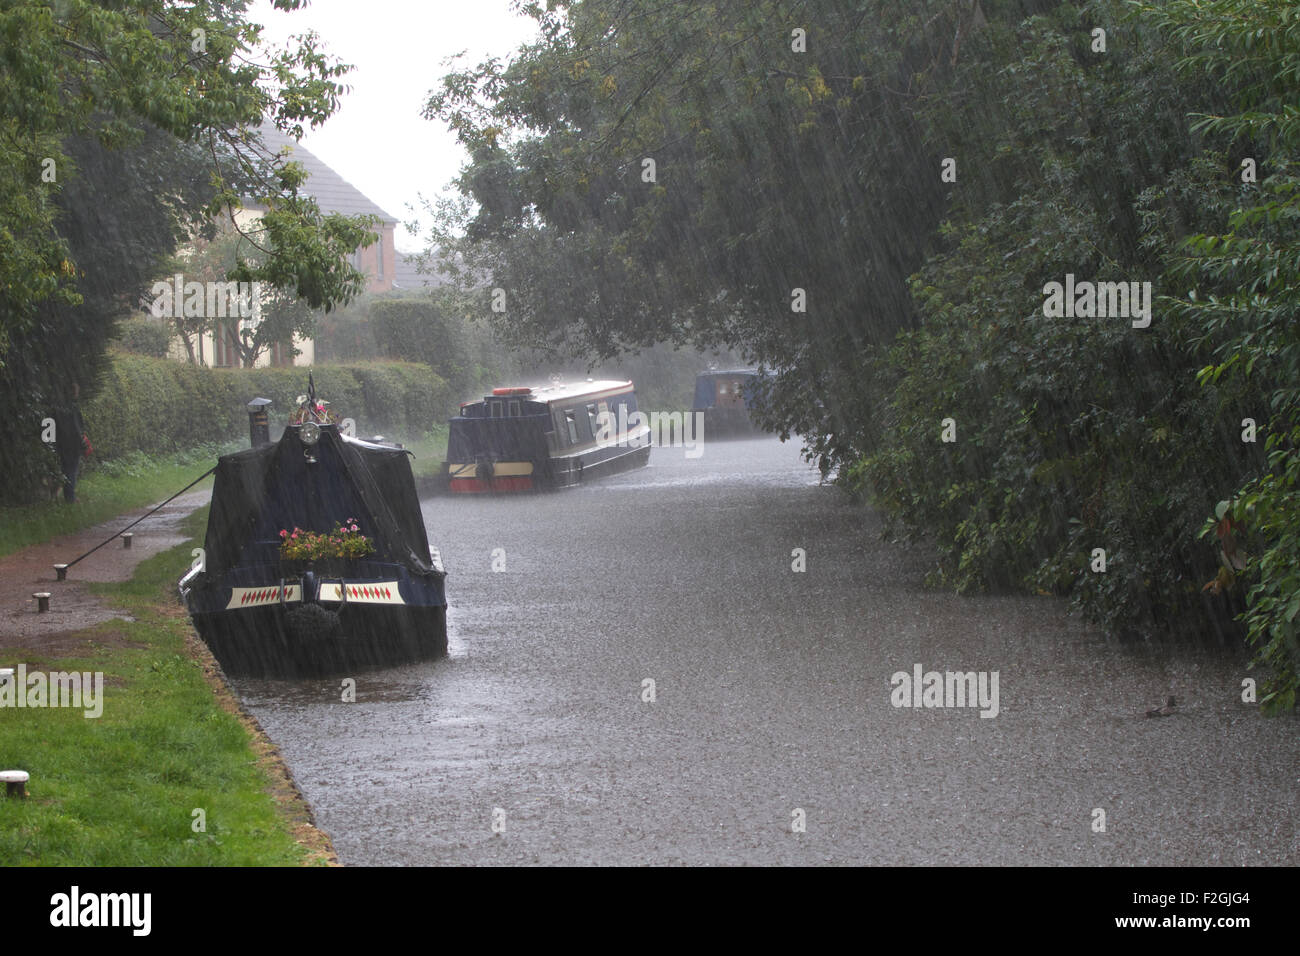 Boats moored on the Staffordshire and Worcestershire Canal at Penkridge, in heavy rain. UK - Stock Image